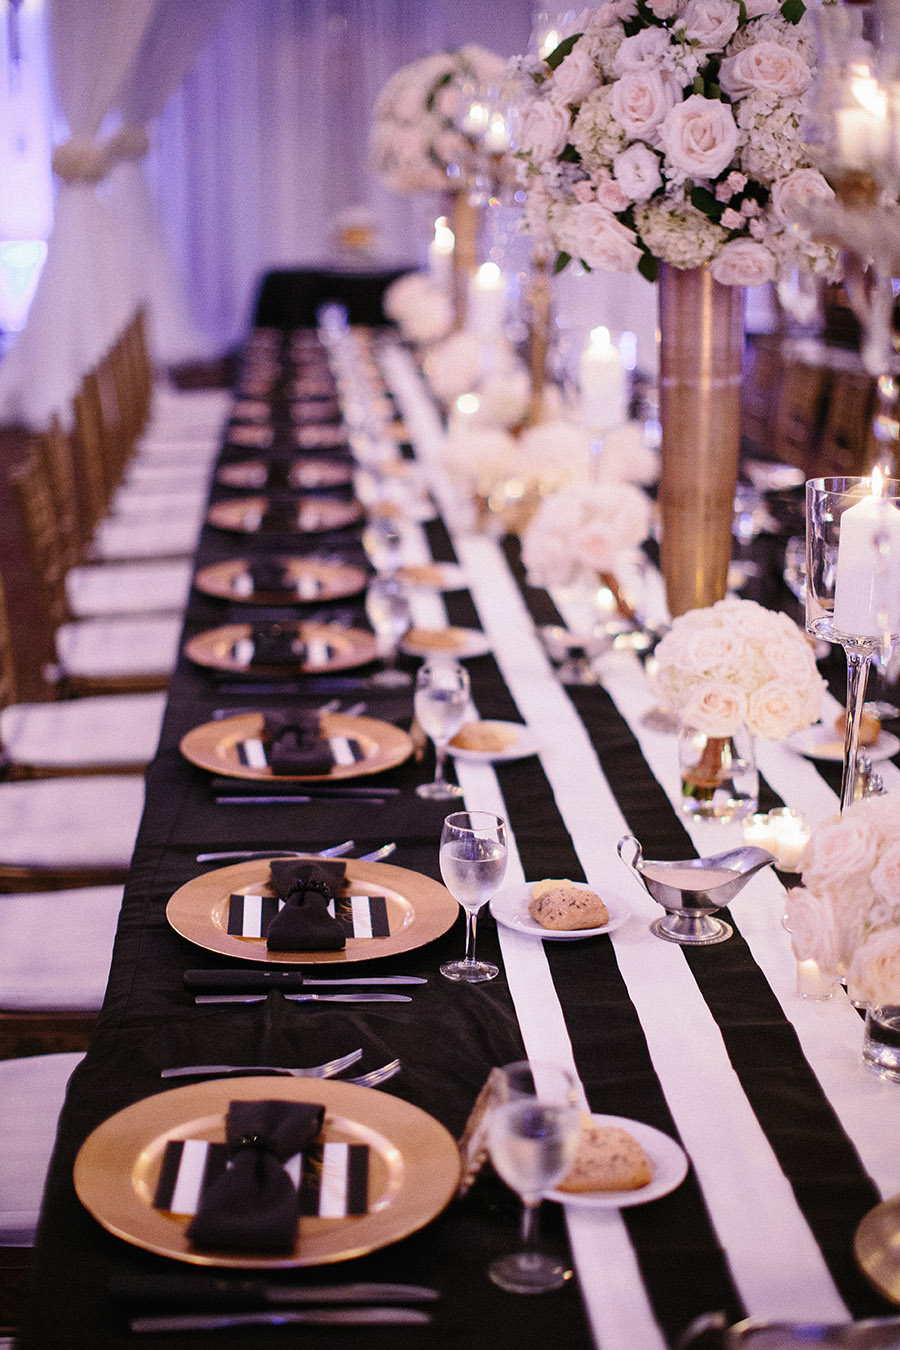 ice cream table and chairs desk chair leans back too far black gold houston wedding at the crystal ballroom - modwedding